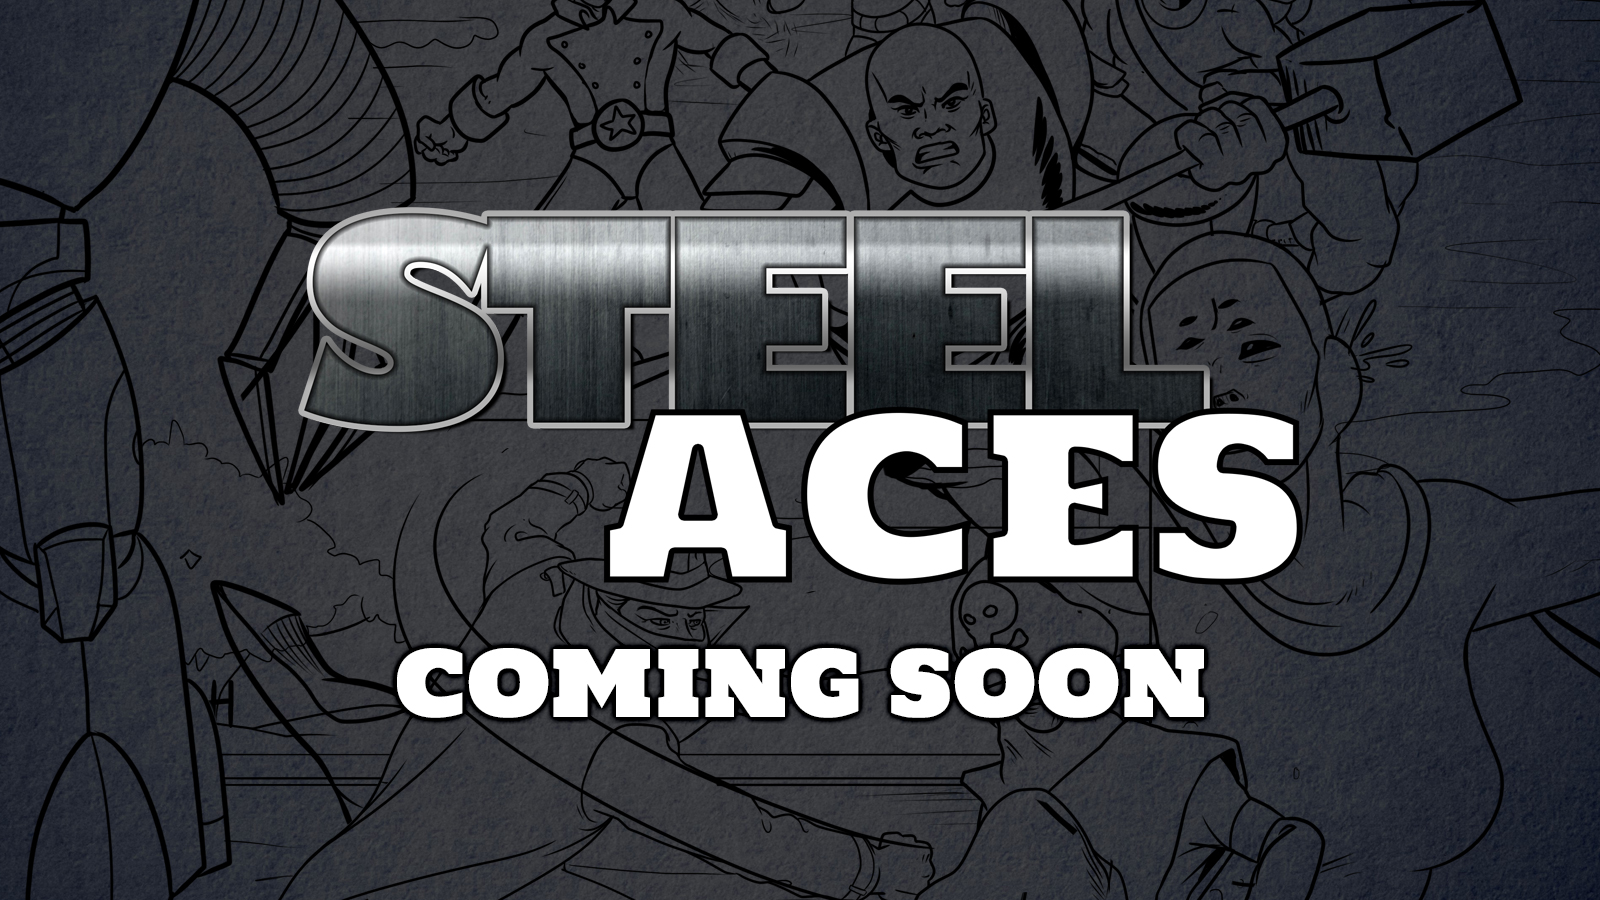 Steel Aces: Coming Soon